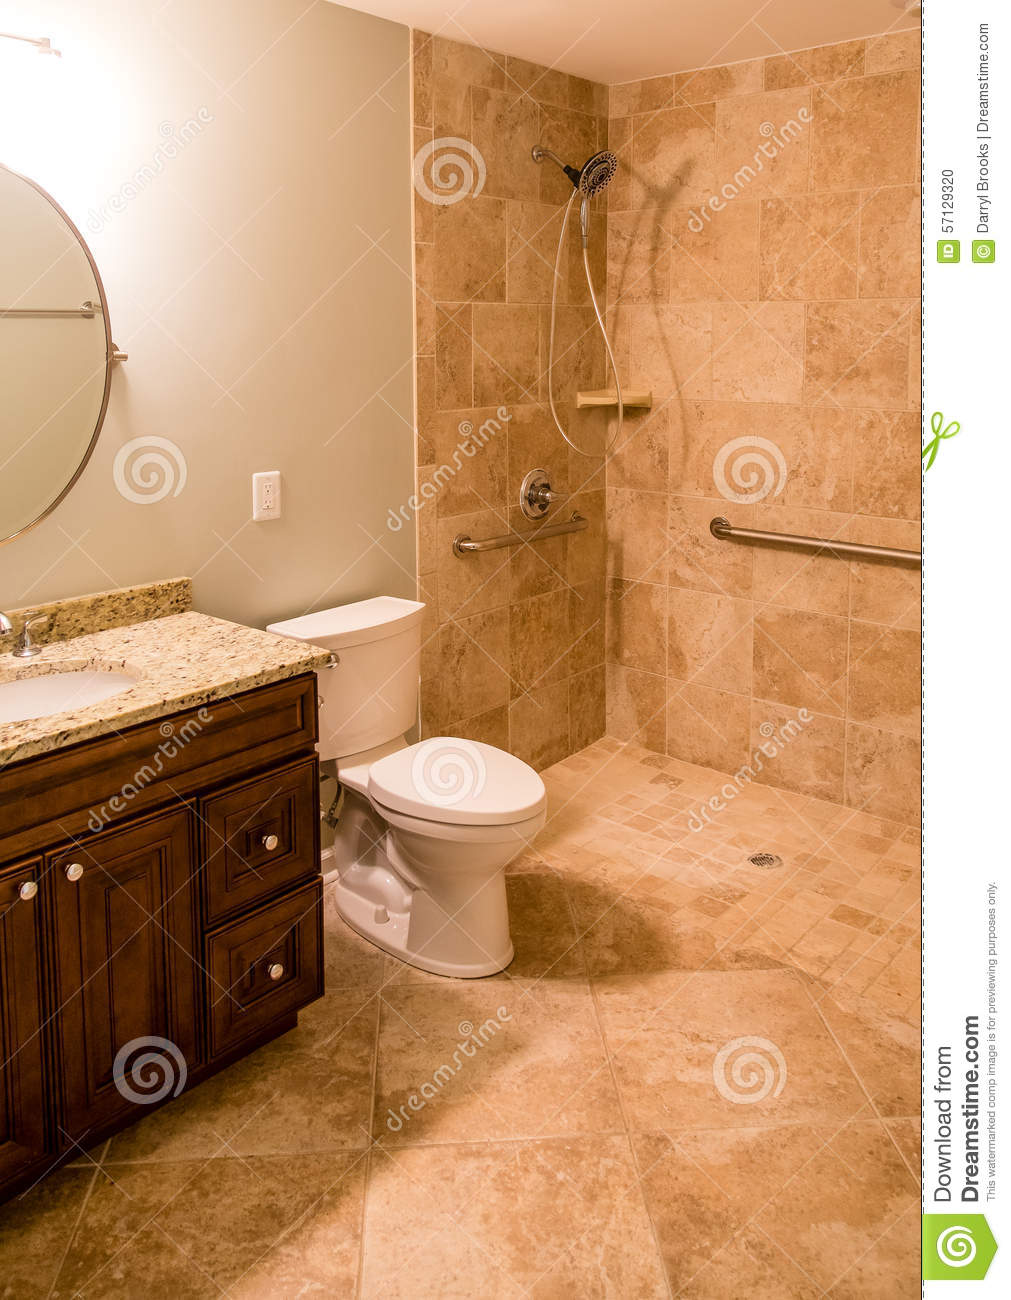 Tile Bathroom With Handicapped Shower Stock Photo Image